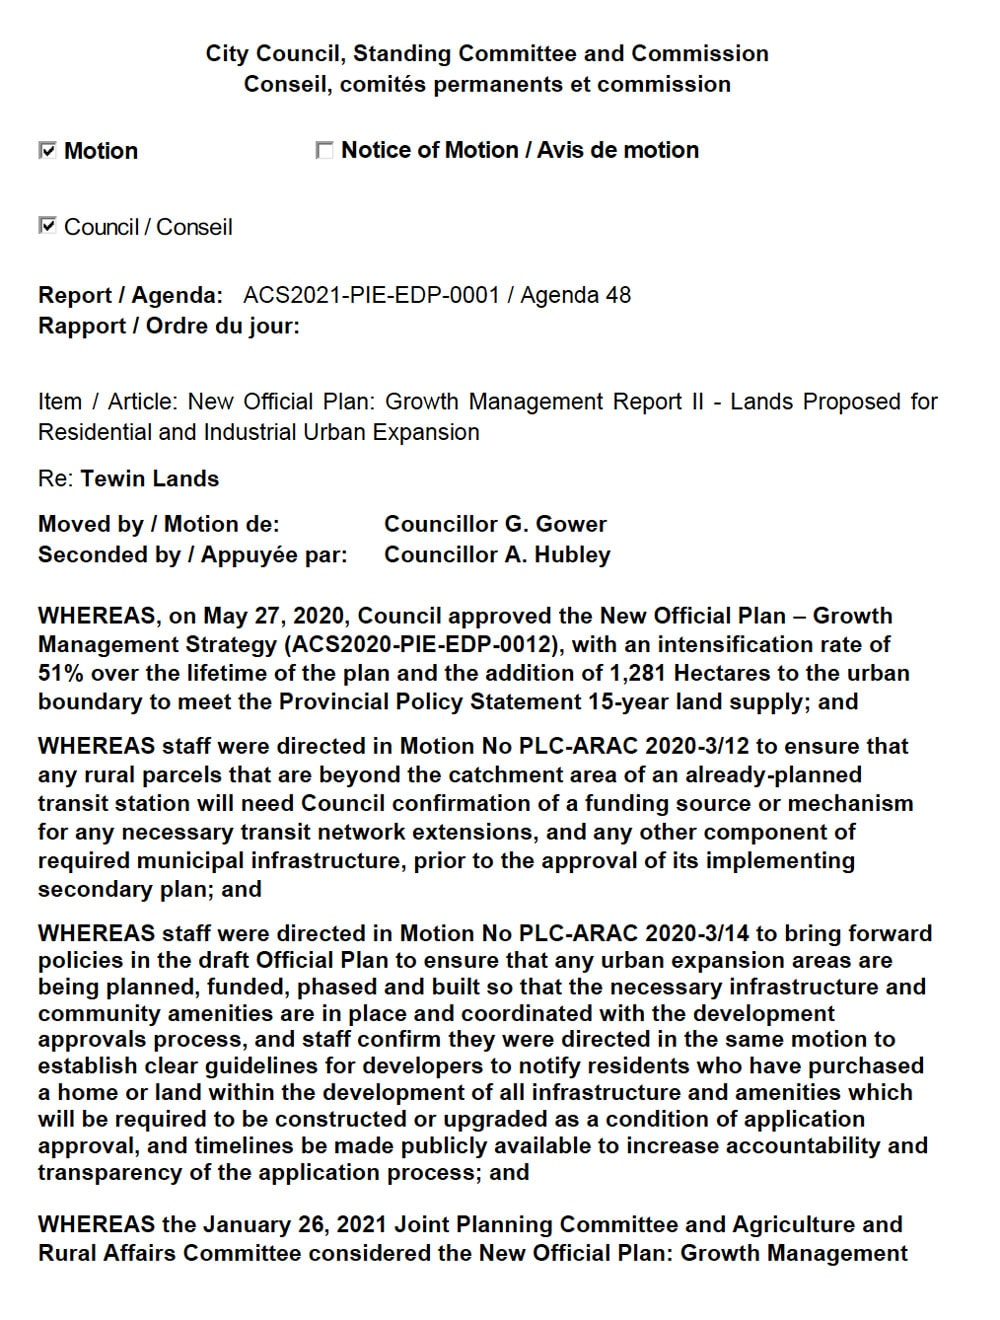 Report / Agenda: ACS2021-PIE-EDP-0001 / Agenda 48 Rapport / Ordre du jour: Item / Article: New Official Plan: Growth Management Report II - Lands Proposed for Residential and Industrial Urban Expansion Re: Tewin Lands Moved by / Motion de: Councillor G. Gower Seconded by / Appuyée par: Councillor A. Hubley WHEREAS, on May 27, 2020, Council approved the New Official Plan – Growth Management Strategy (ACS2020-PIE-EDP-0012), with an intensification rate of 51% over the lifetime of the plan and the addition of 1,281 Hectares to the urban boundary to meet the Provincial Policy Statement 15-year land supply; and WHEREAS staff were directed in Motion No PLC-ARAC 2020-3/12 to ensure that any rural parcels that are beyond the catchment area of an already-planned transit station will need Council confirmation of a funding source or mechanism for any necessary transit network extensions, and any other component of required municipal infrastructure, prior to the approval of its implementing secondary plan; and WHEREAS staff were directed in Motion No PLC-ARAC 2020-3/14 to bring forward policies in the draft Official Plan to ensure that any urban expansion areas are being planned, funded, phased and built so that the necessary infrastructure and community amenities are in place and coordinated with the development approvals process, and staff confirm they were directed in the same motion to establish clear guidelines for developers to notify residents who have purchased a home or land within the development of all infrastructure and amenities which will be required to be constructed or upgraded as a condition of application approval, and timelines be made publicly available to increase accountability and transparency of the application process; and WHEREAS the January 26, 2021 Joint Planning Committee and Agriculture and Rural Affairs Committee considered the New Official Plan: Growth Management